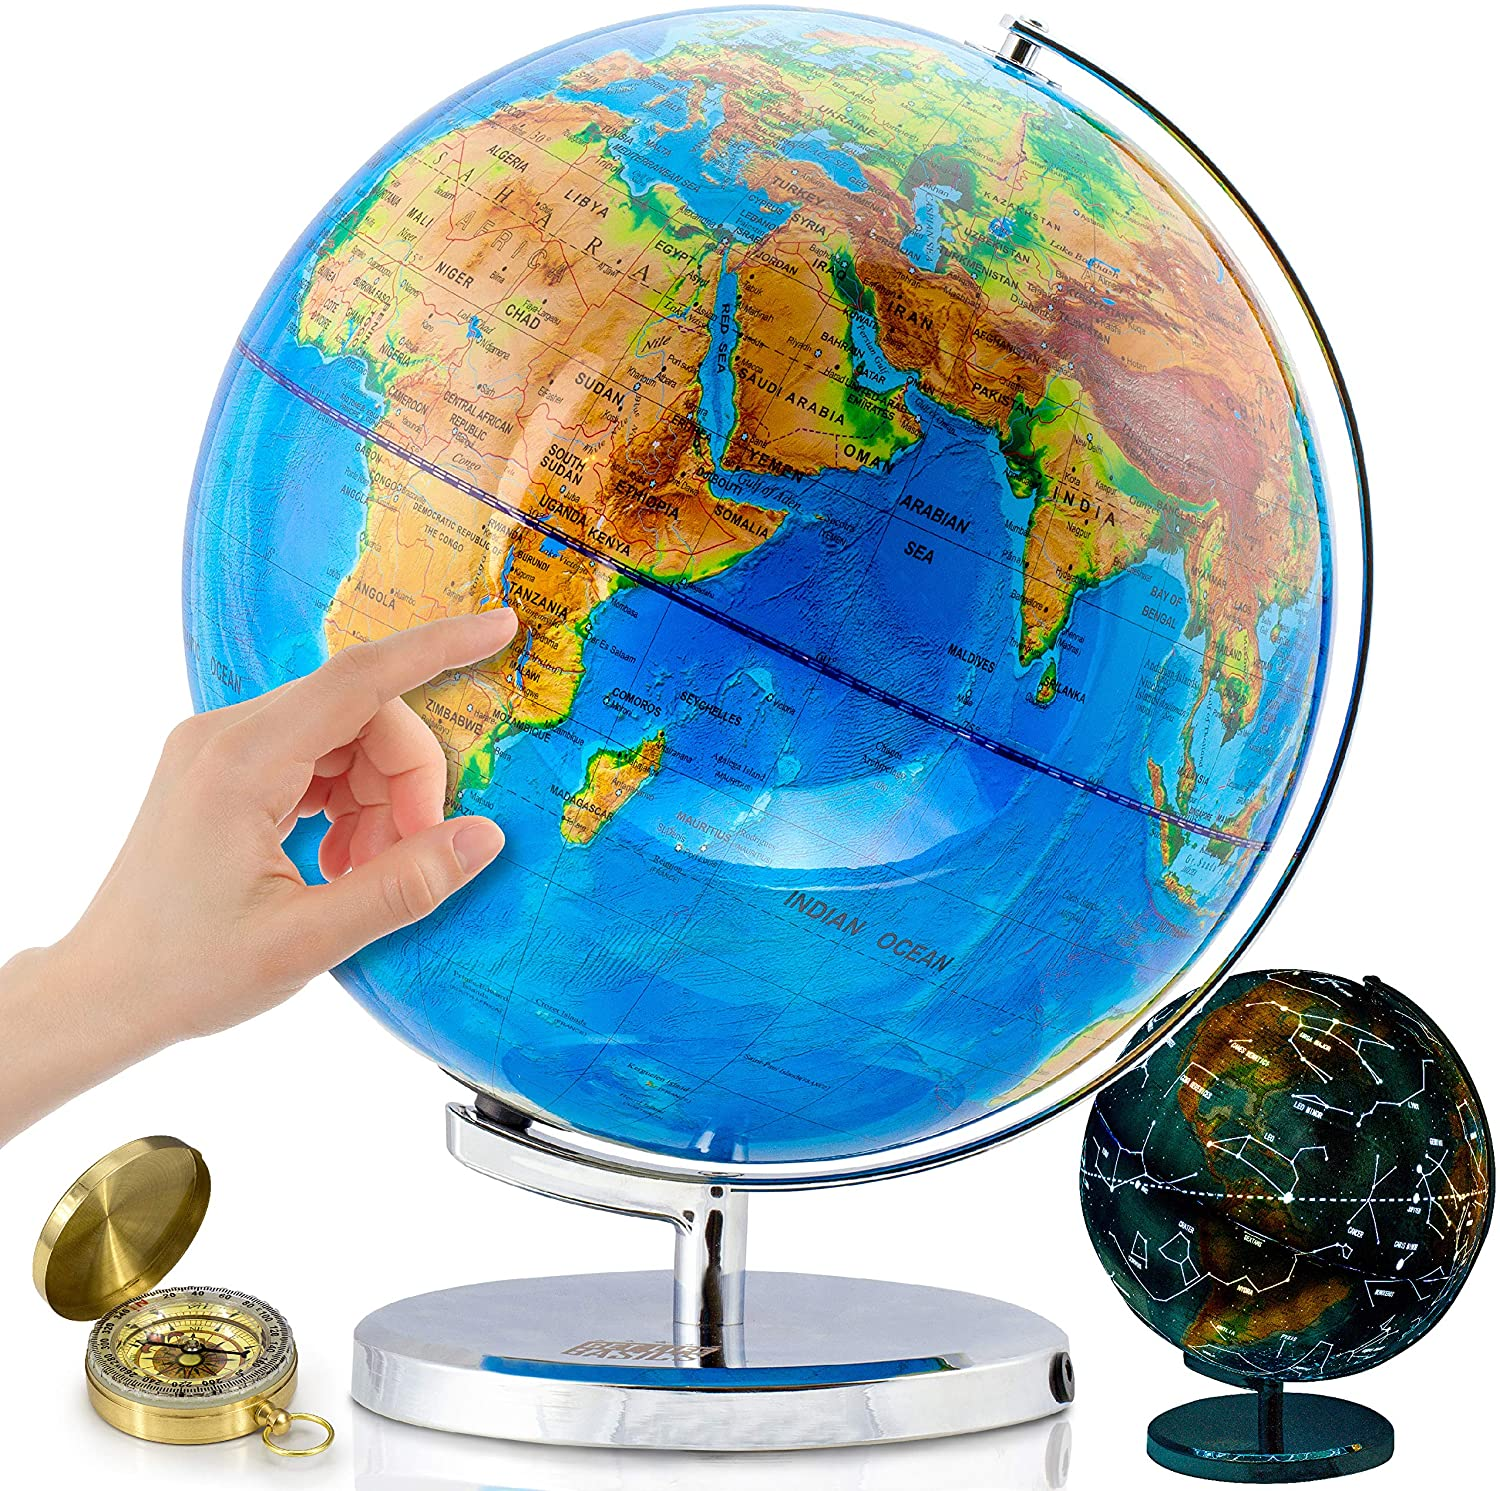 World Globe With Illuminated Constellations 13 Light Up Globe For Kids Adults Interactive Earth Globe Makes Great Educational Toys Office Supplies Teacher Desk Décor More By Get Life